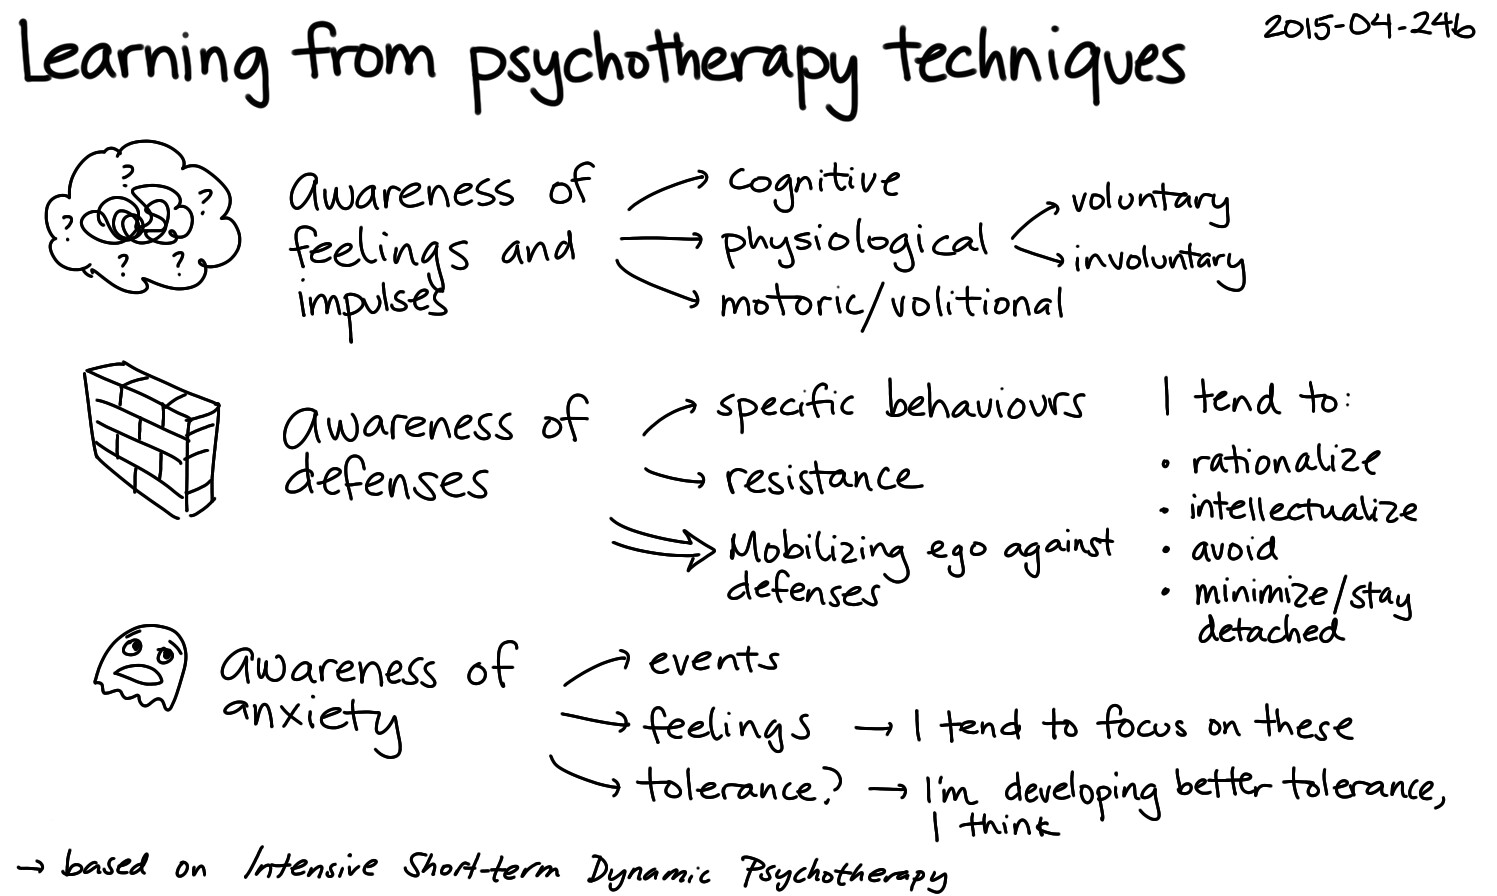 Learning from psychotherapy techniques by Sacha Chua